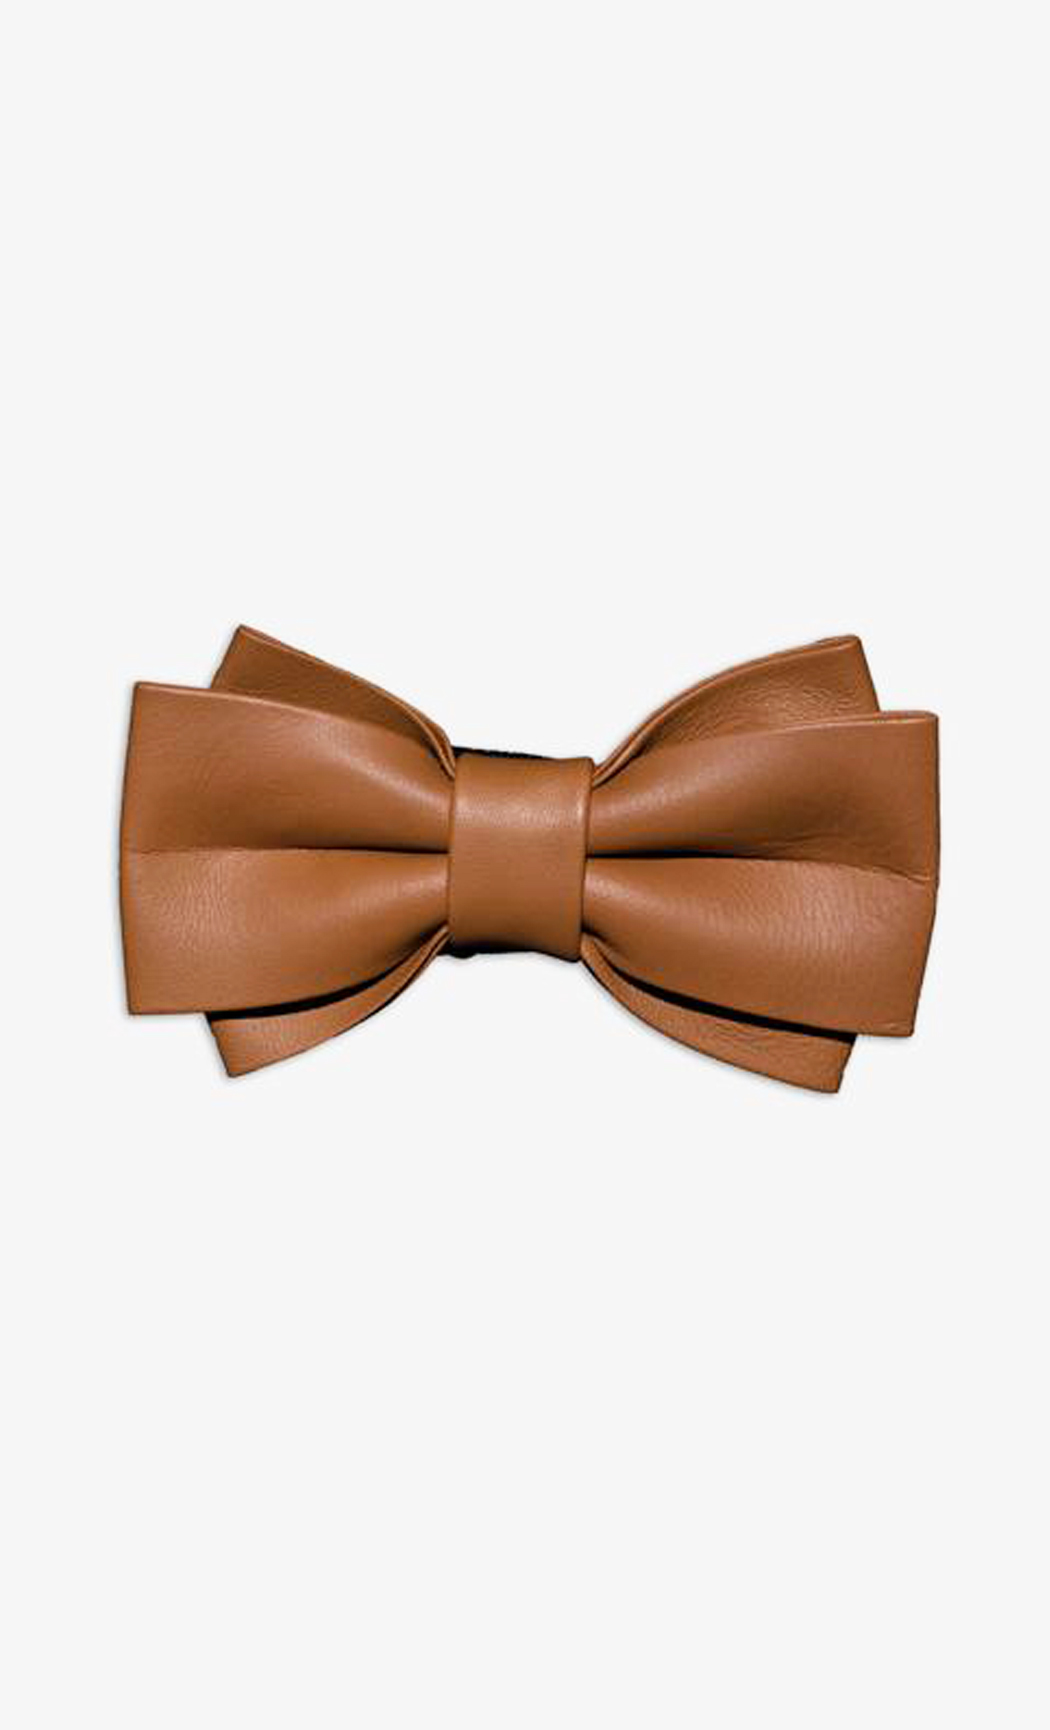 Light Brown Genuine Leather Twin Wide Bow Tie. Buy Online